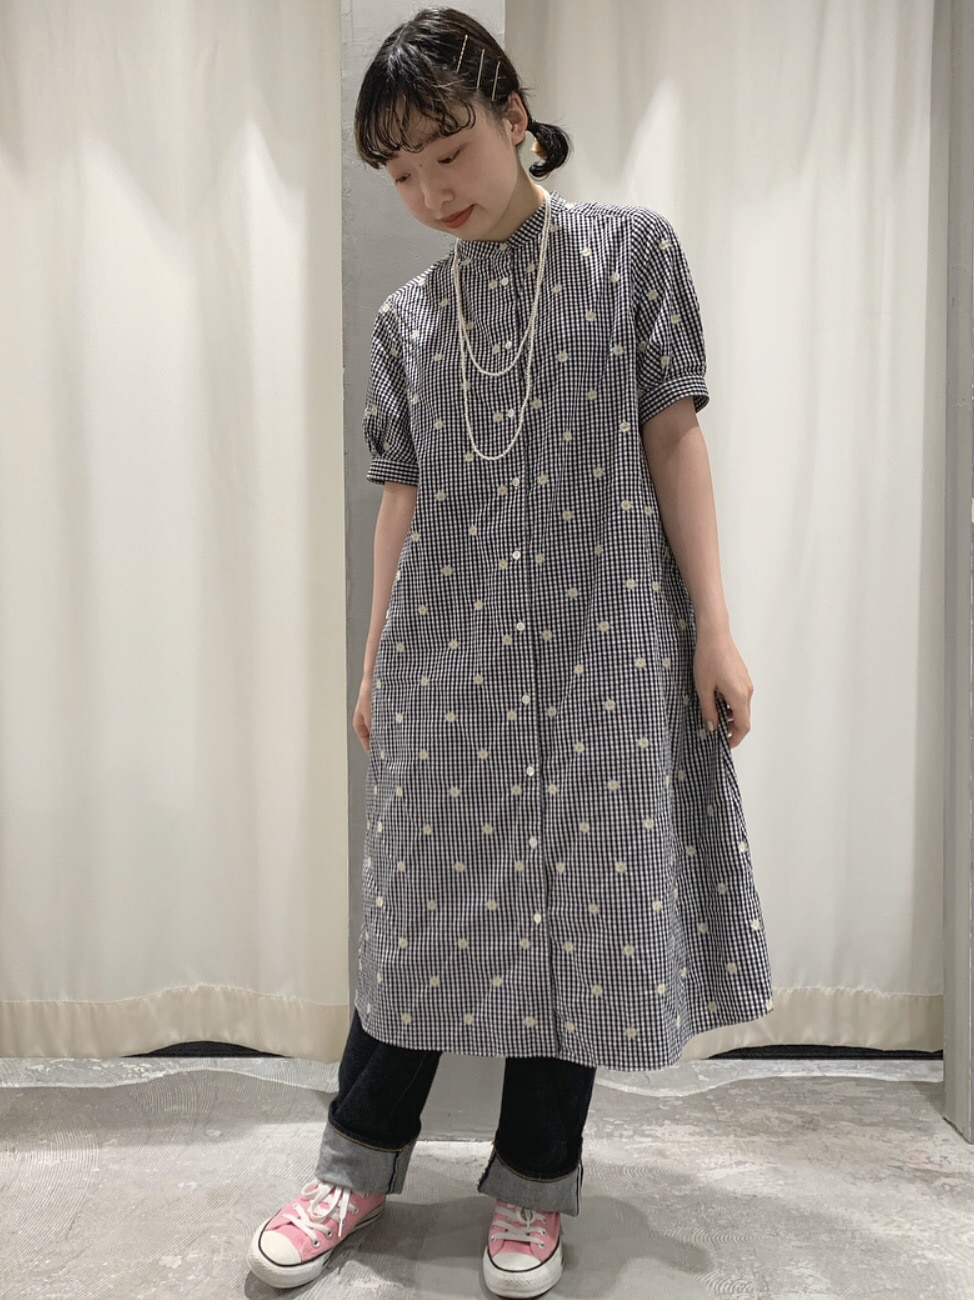 【 NEW 】AMB SHOP CHILD WOMAN CHILD WOMAN , PAR ICI ルミネ横浜 身長:158cm 2020.07.03